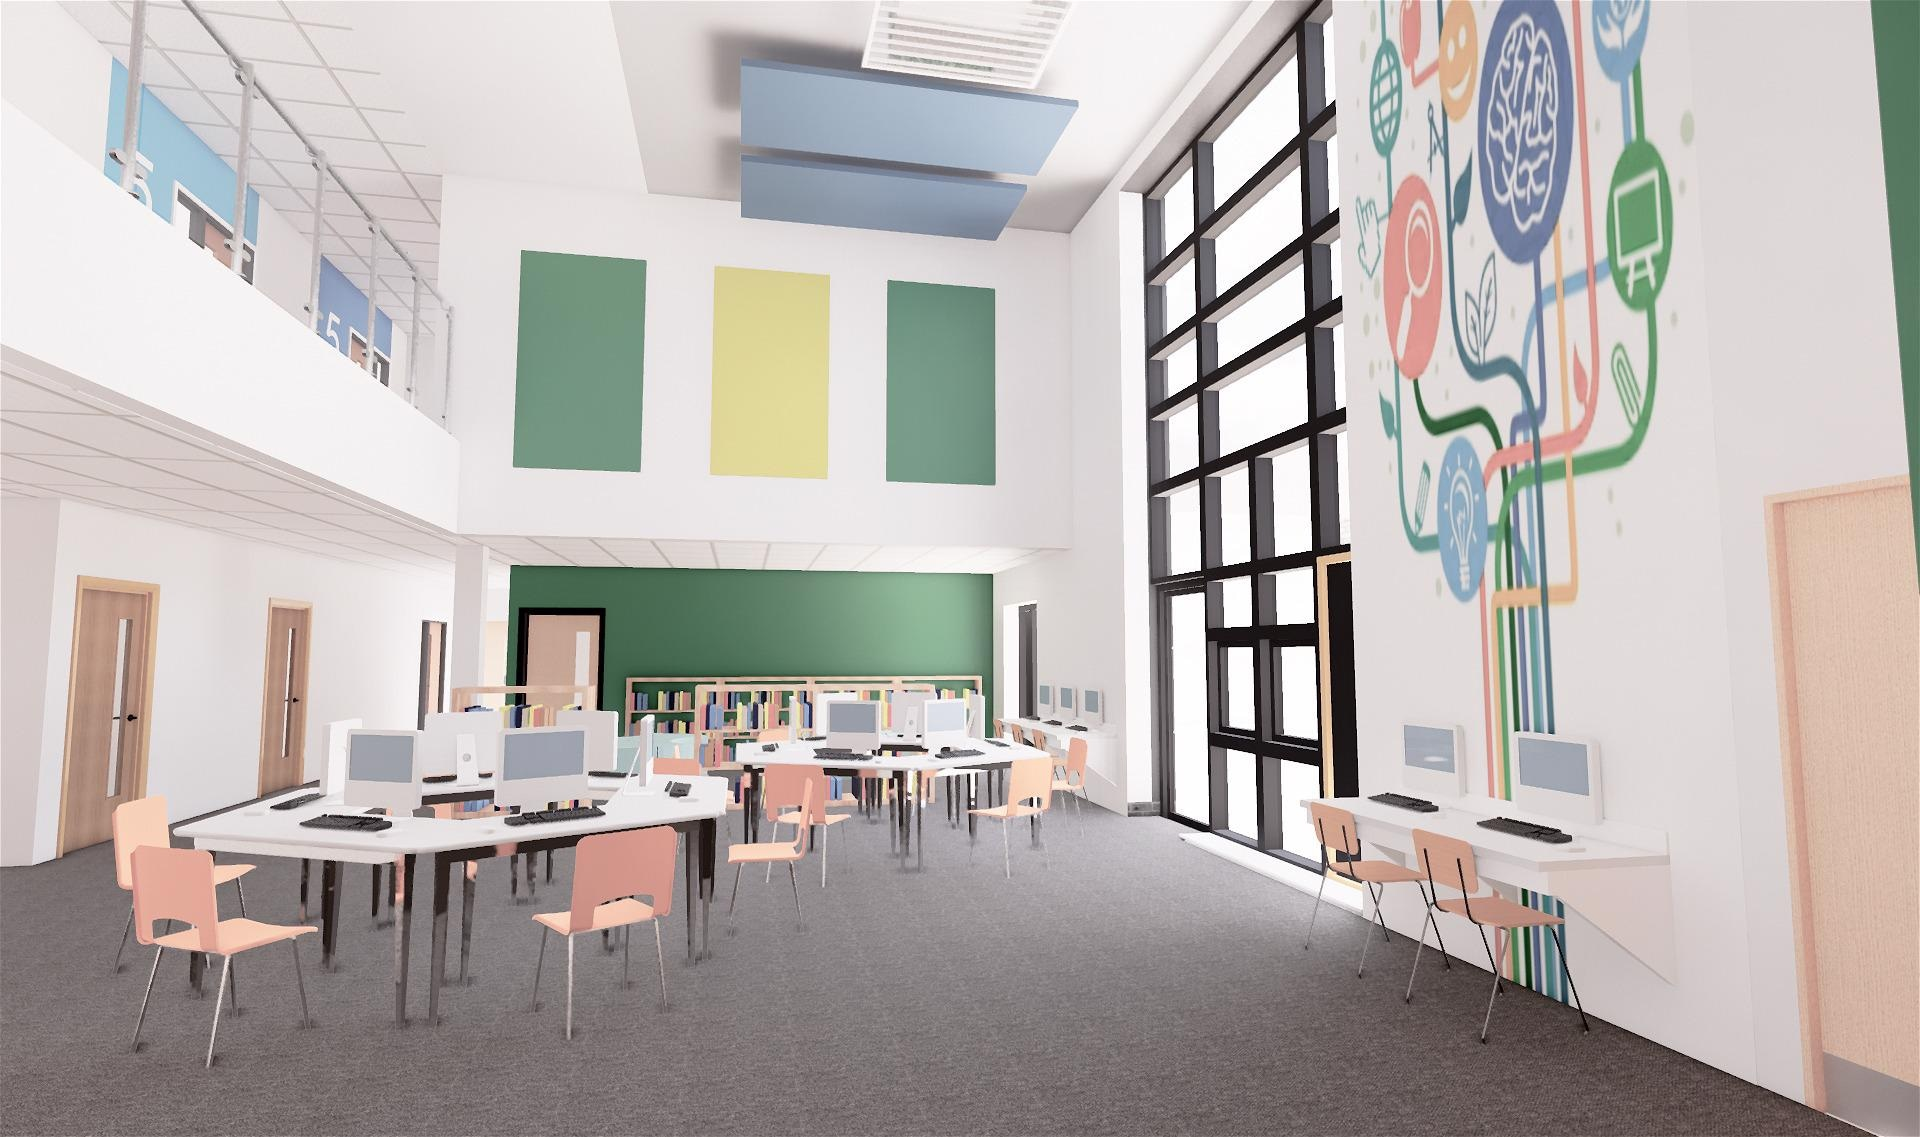 Morgan Sindall Construction to Deliver a New £9.7 Million Specialist STEM School in Cambridge